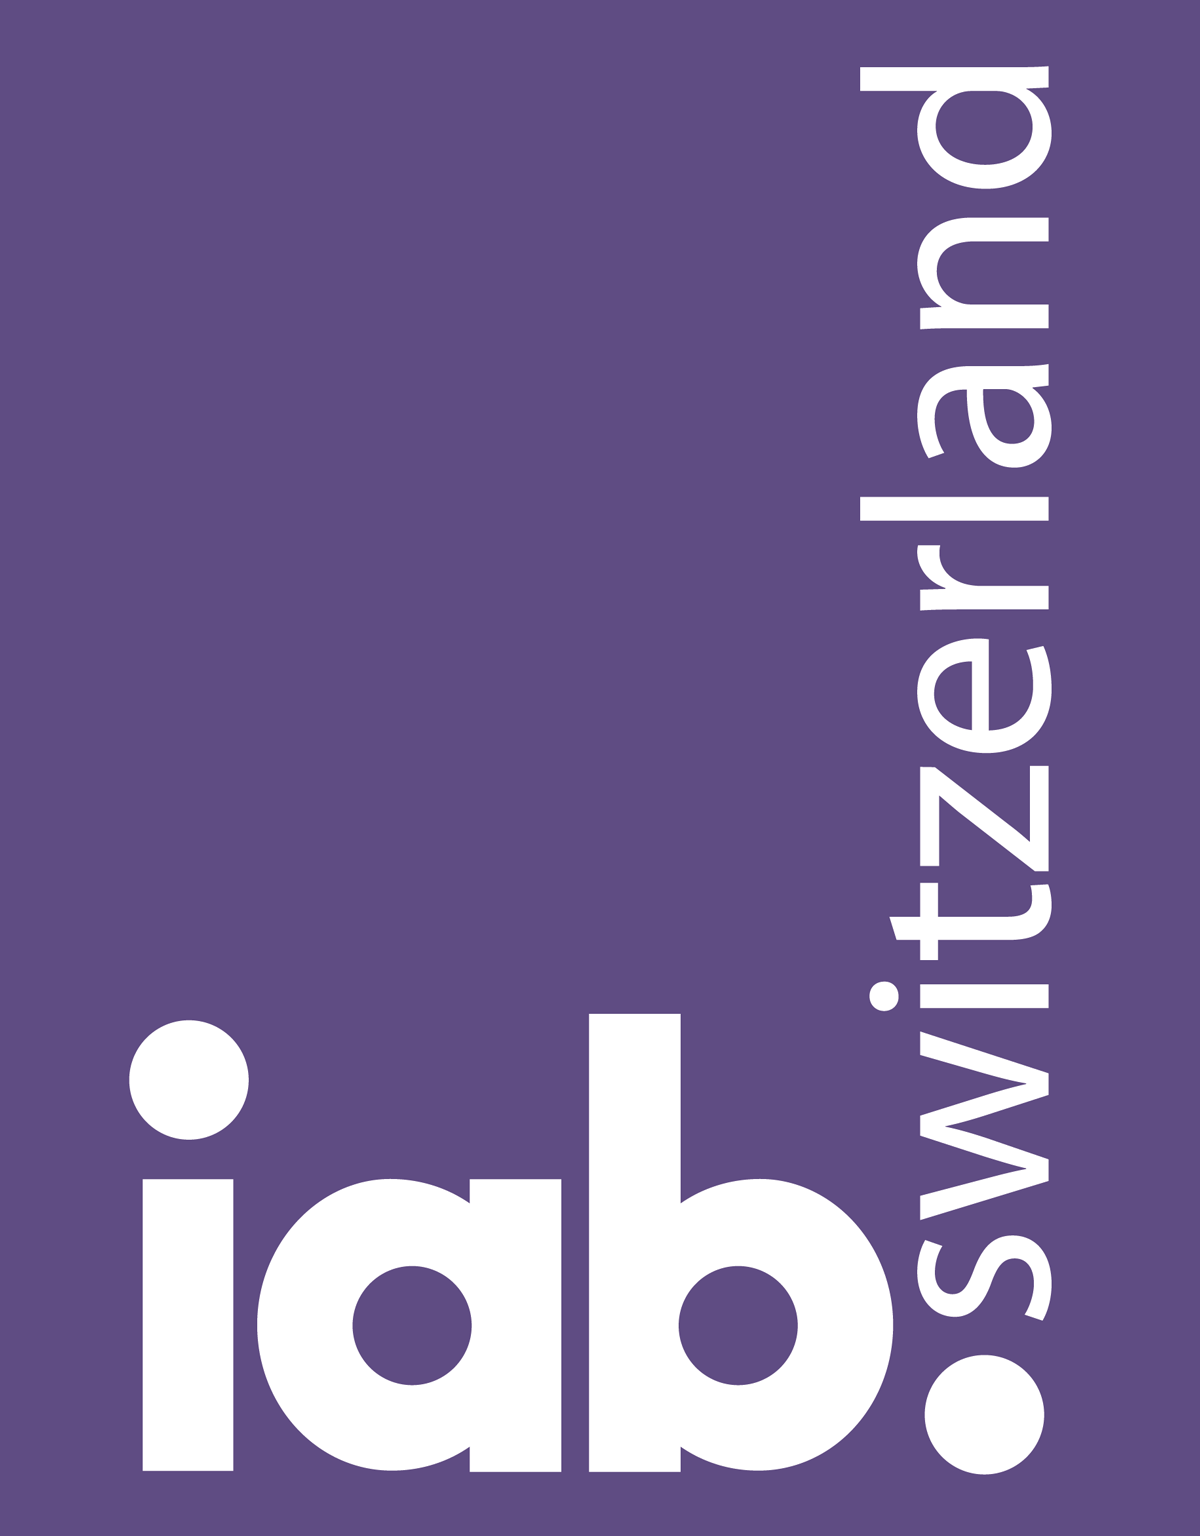 Logo iab switzerland